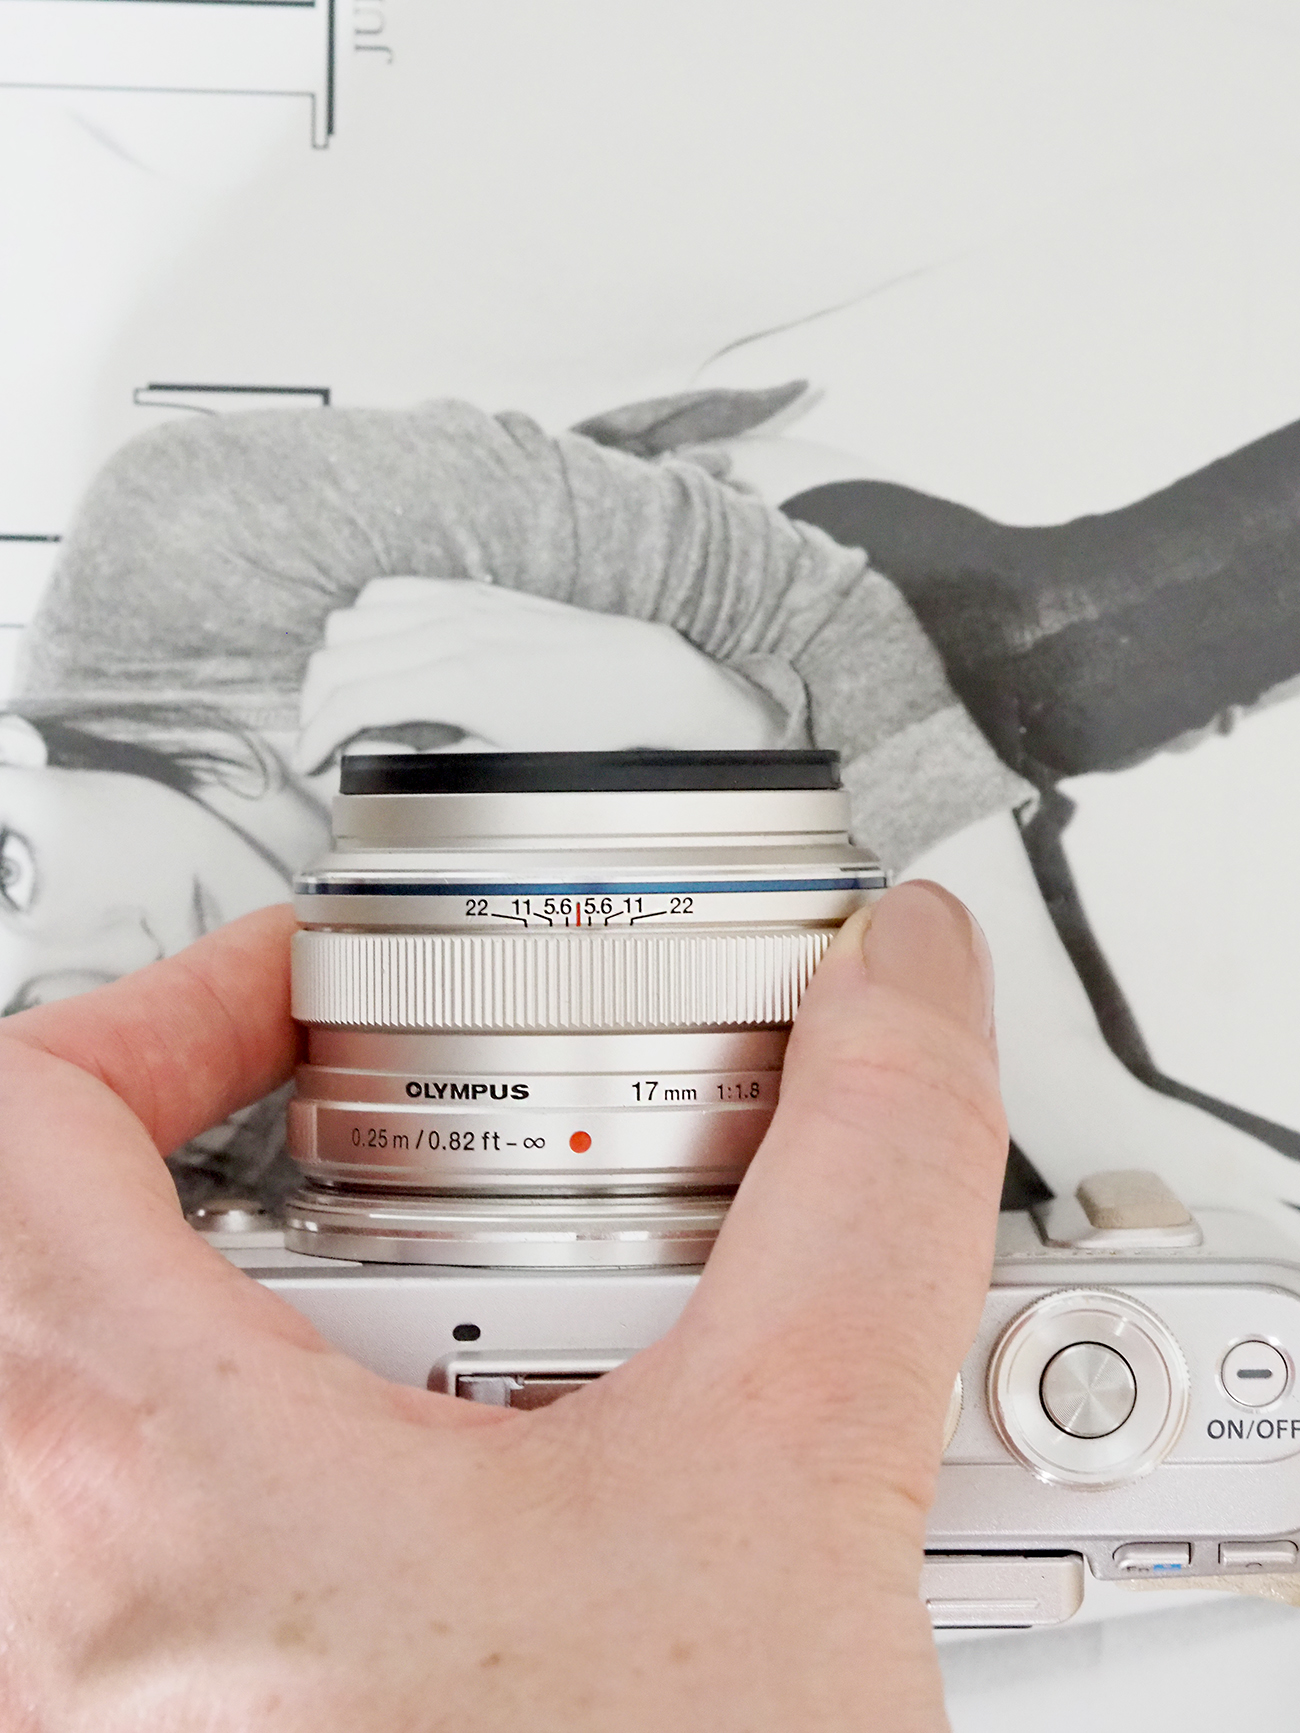 olympus pen 17mm lens focus ring